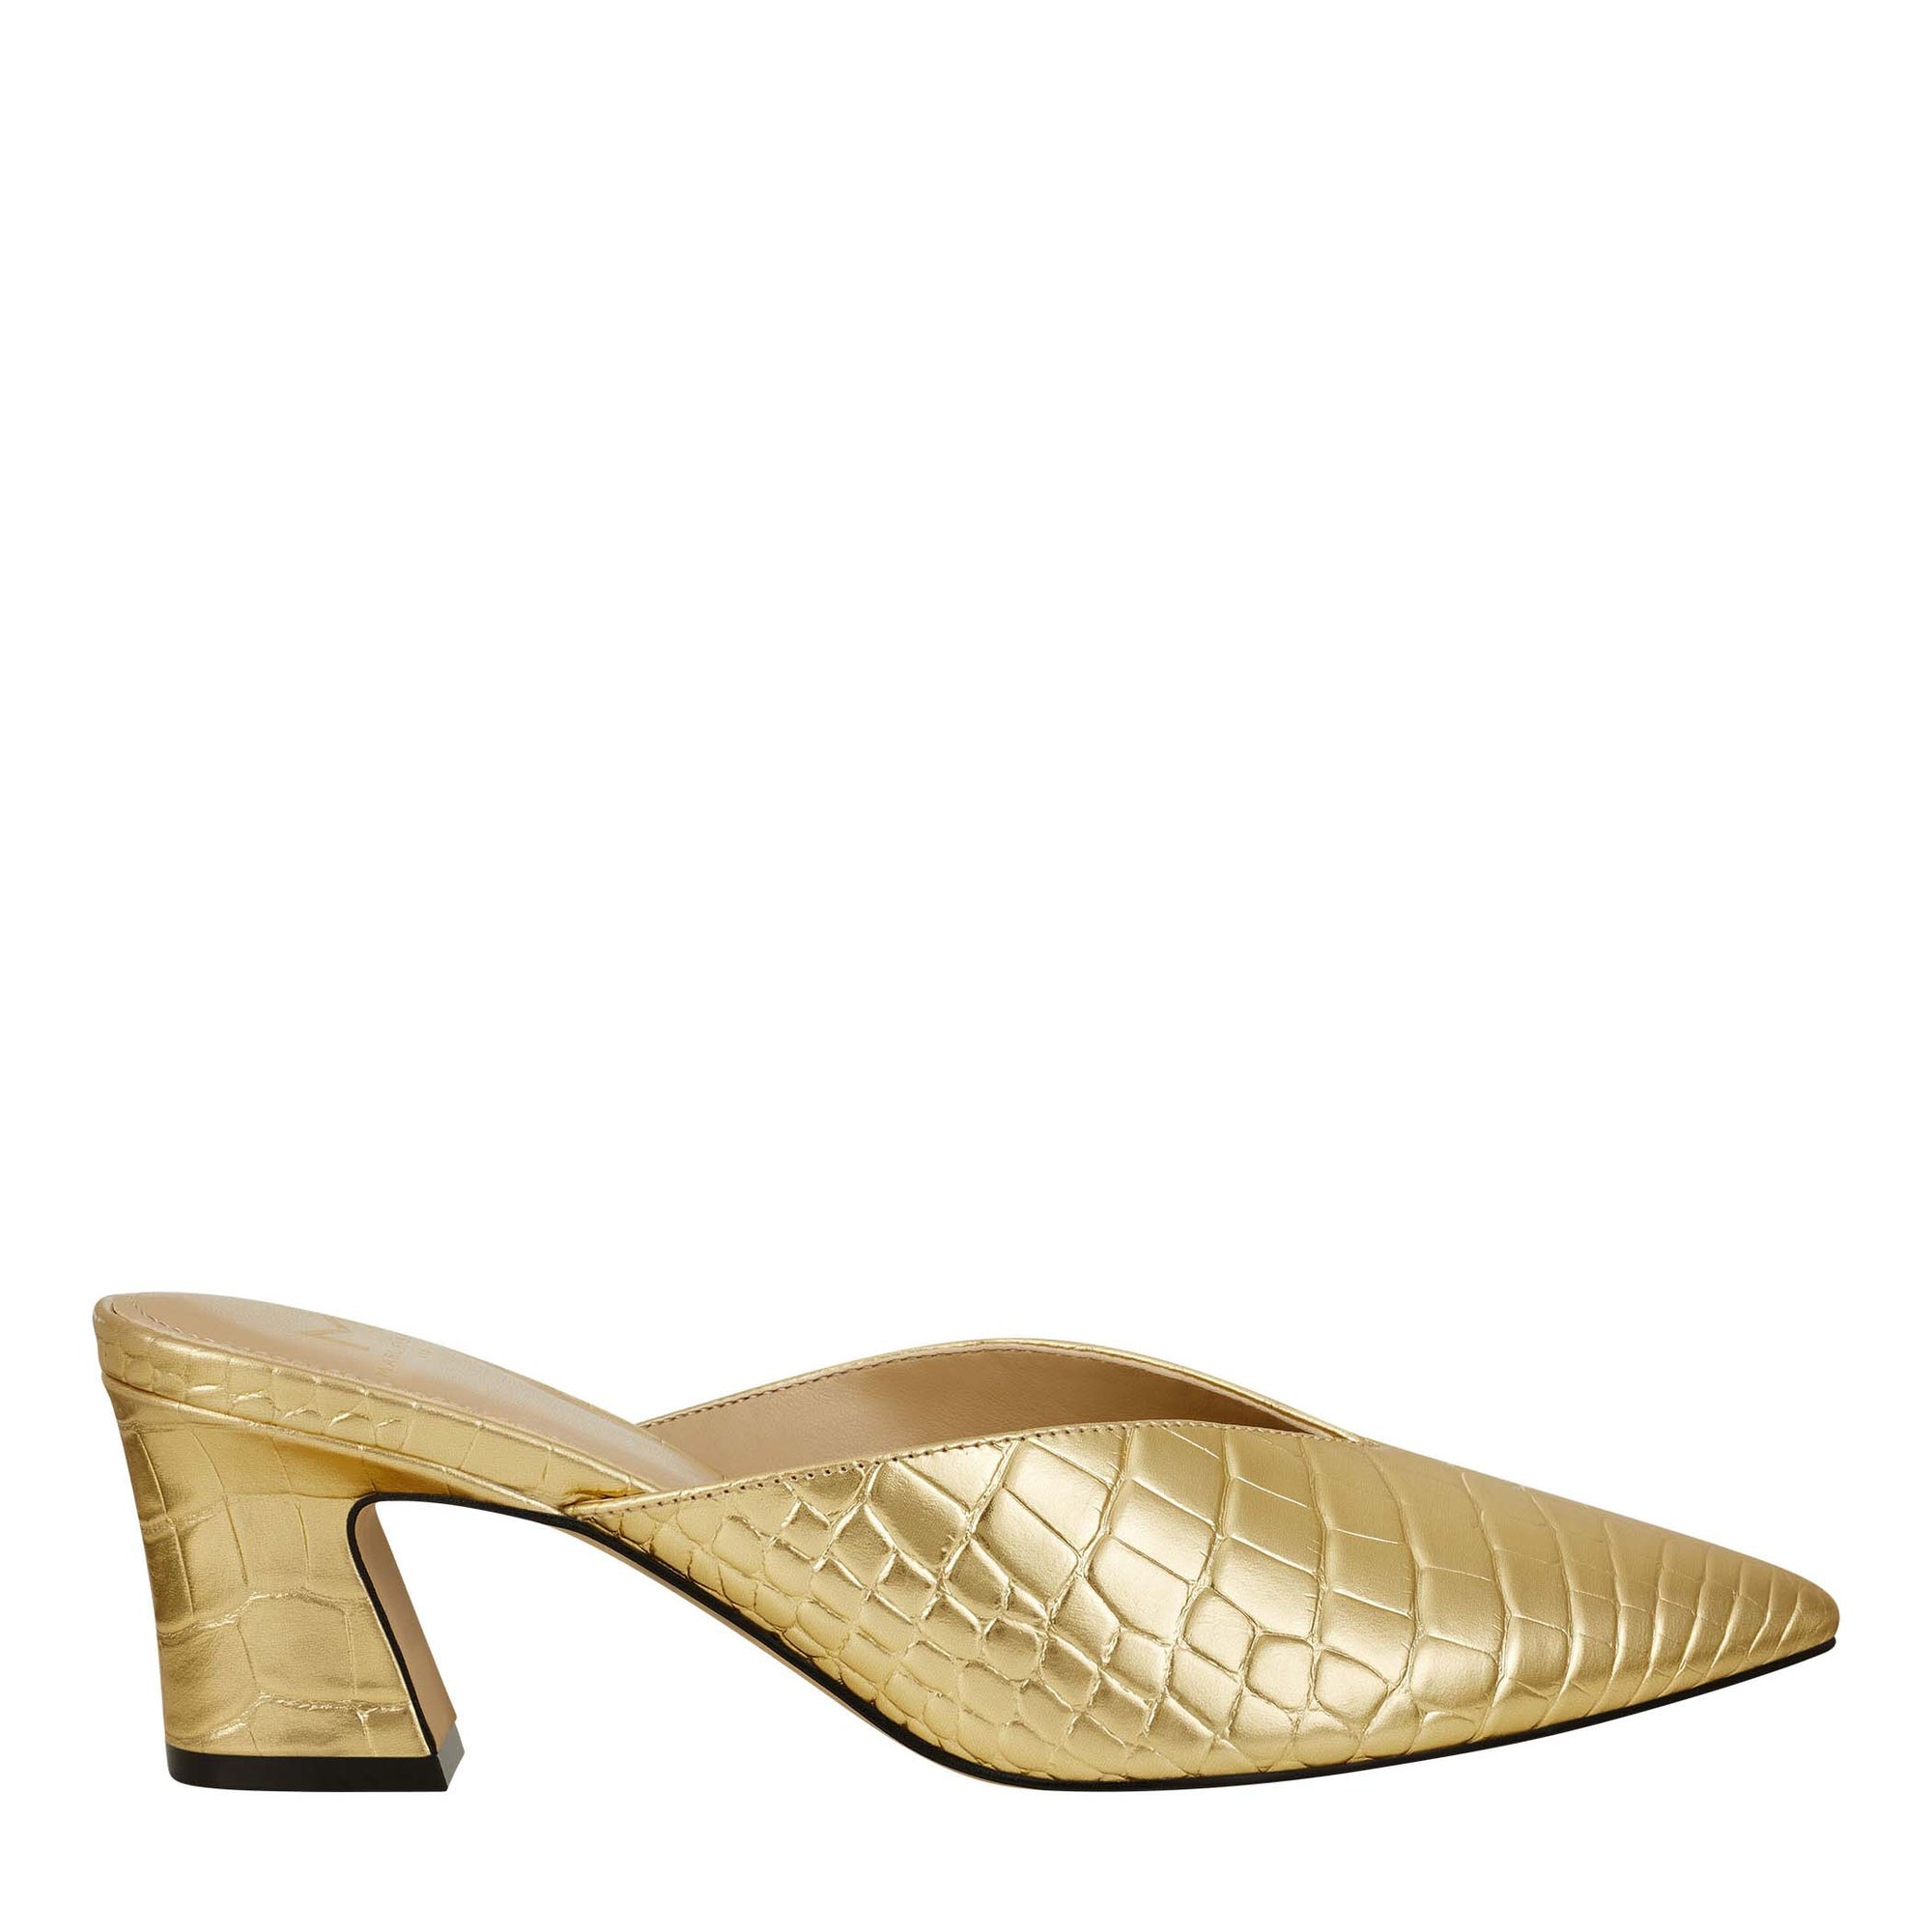 bancy-heeled-mule-in-metallic-croco-embossed-leather